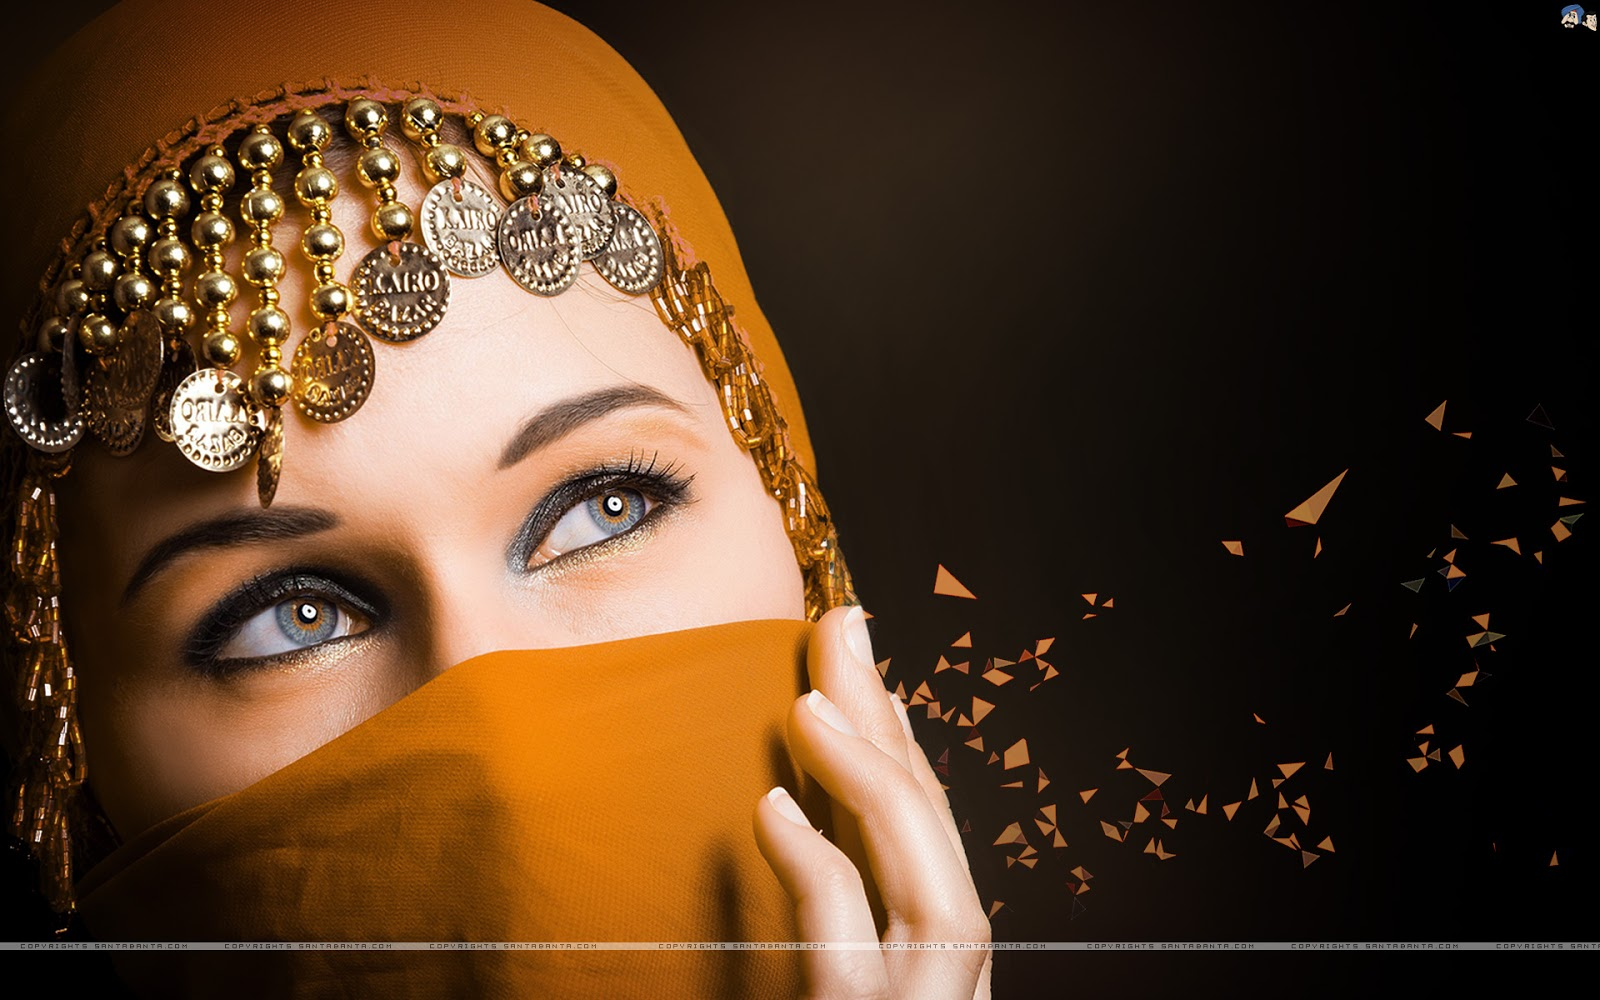 wallpaper hijab wallpapers south - photo #19